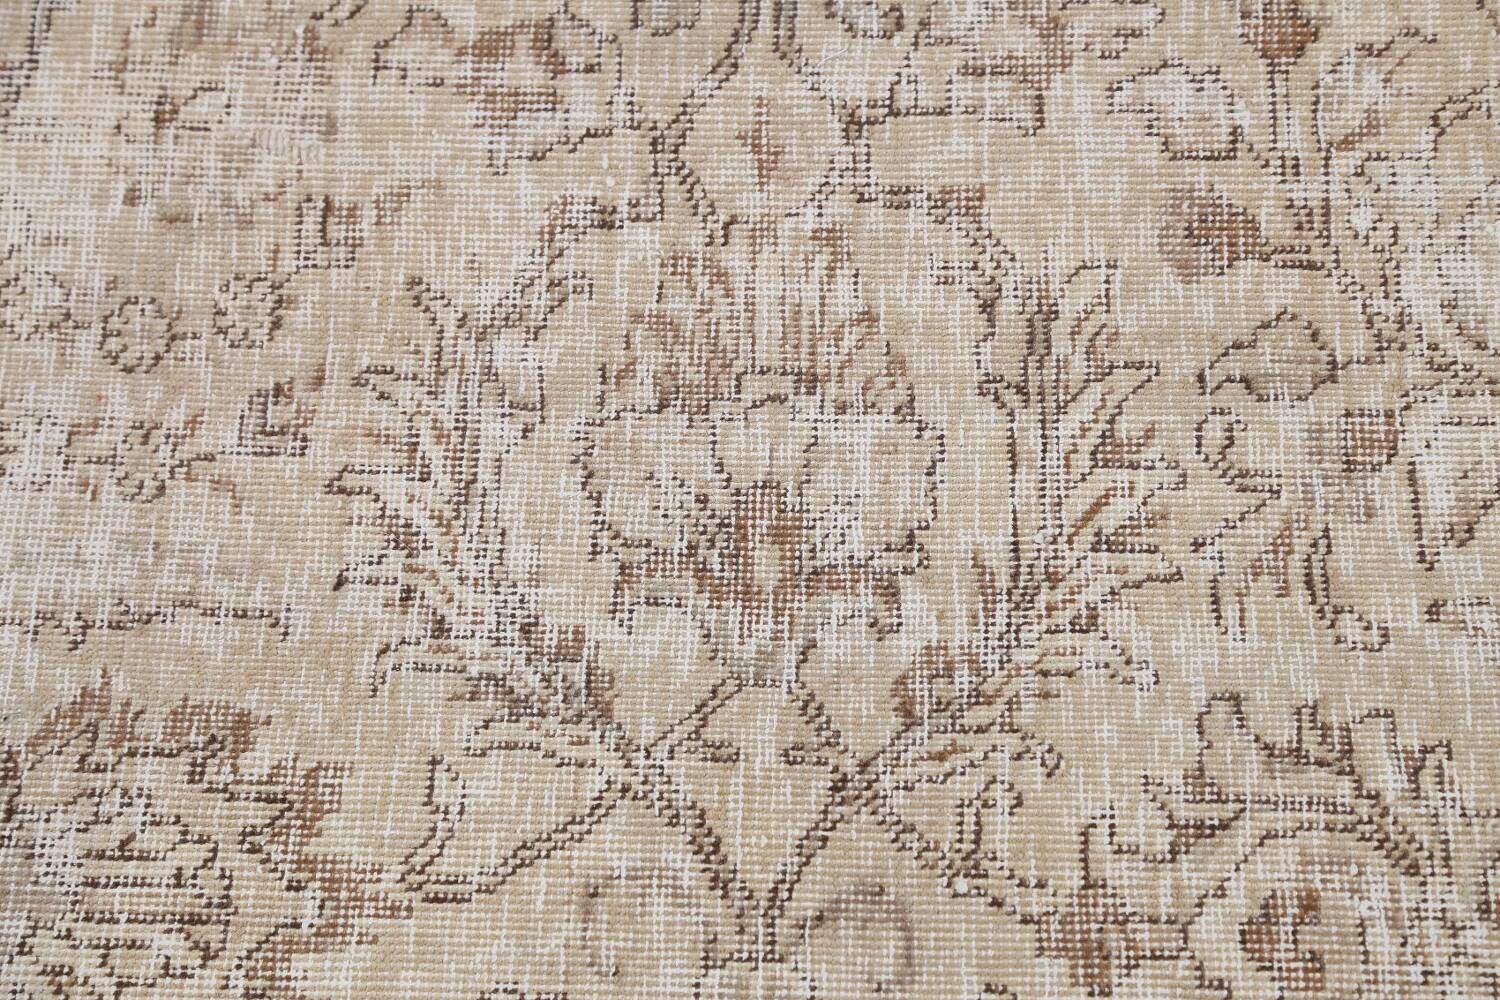 Antique Muted Floral Tabriz Persian Area Rug 9x12 image 10